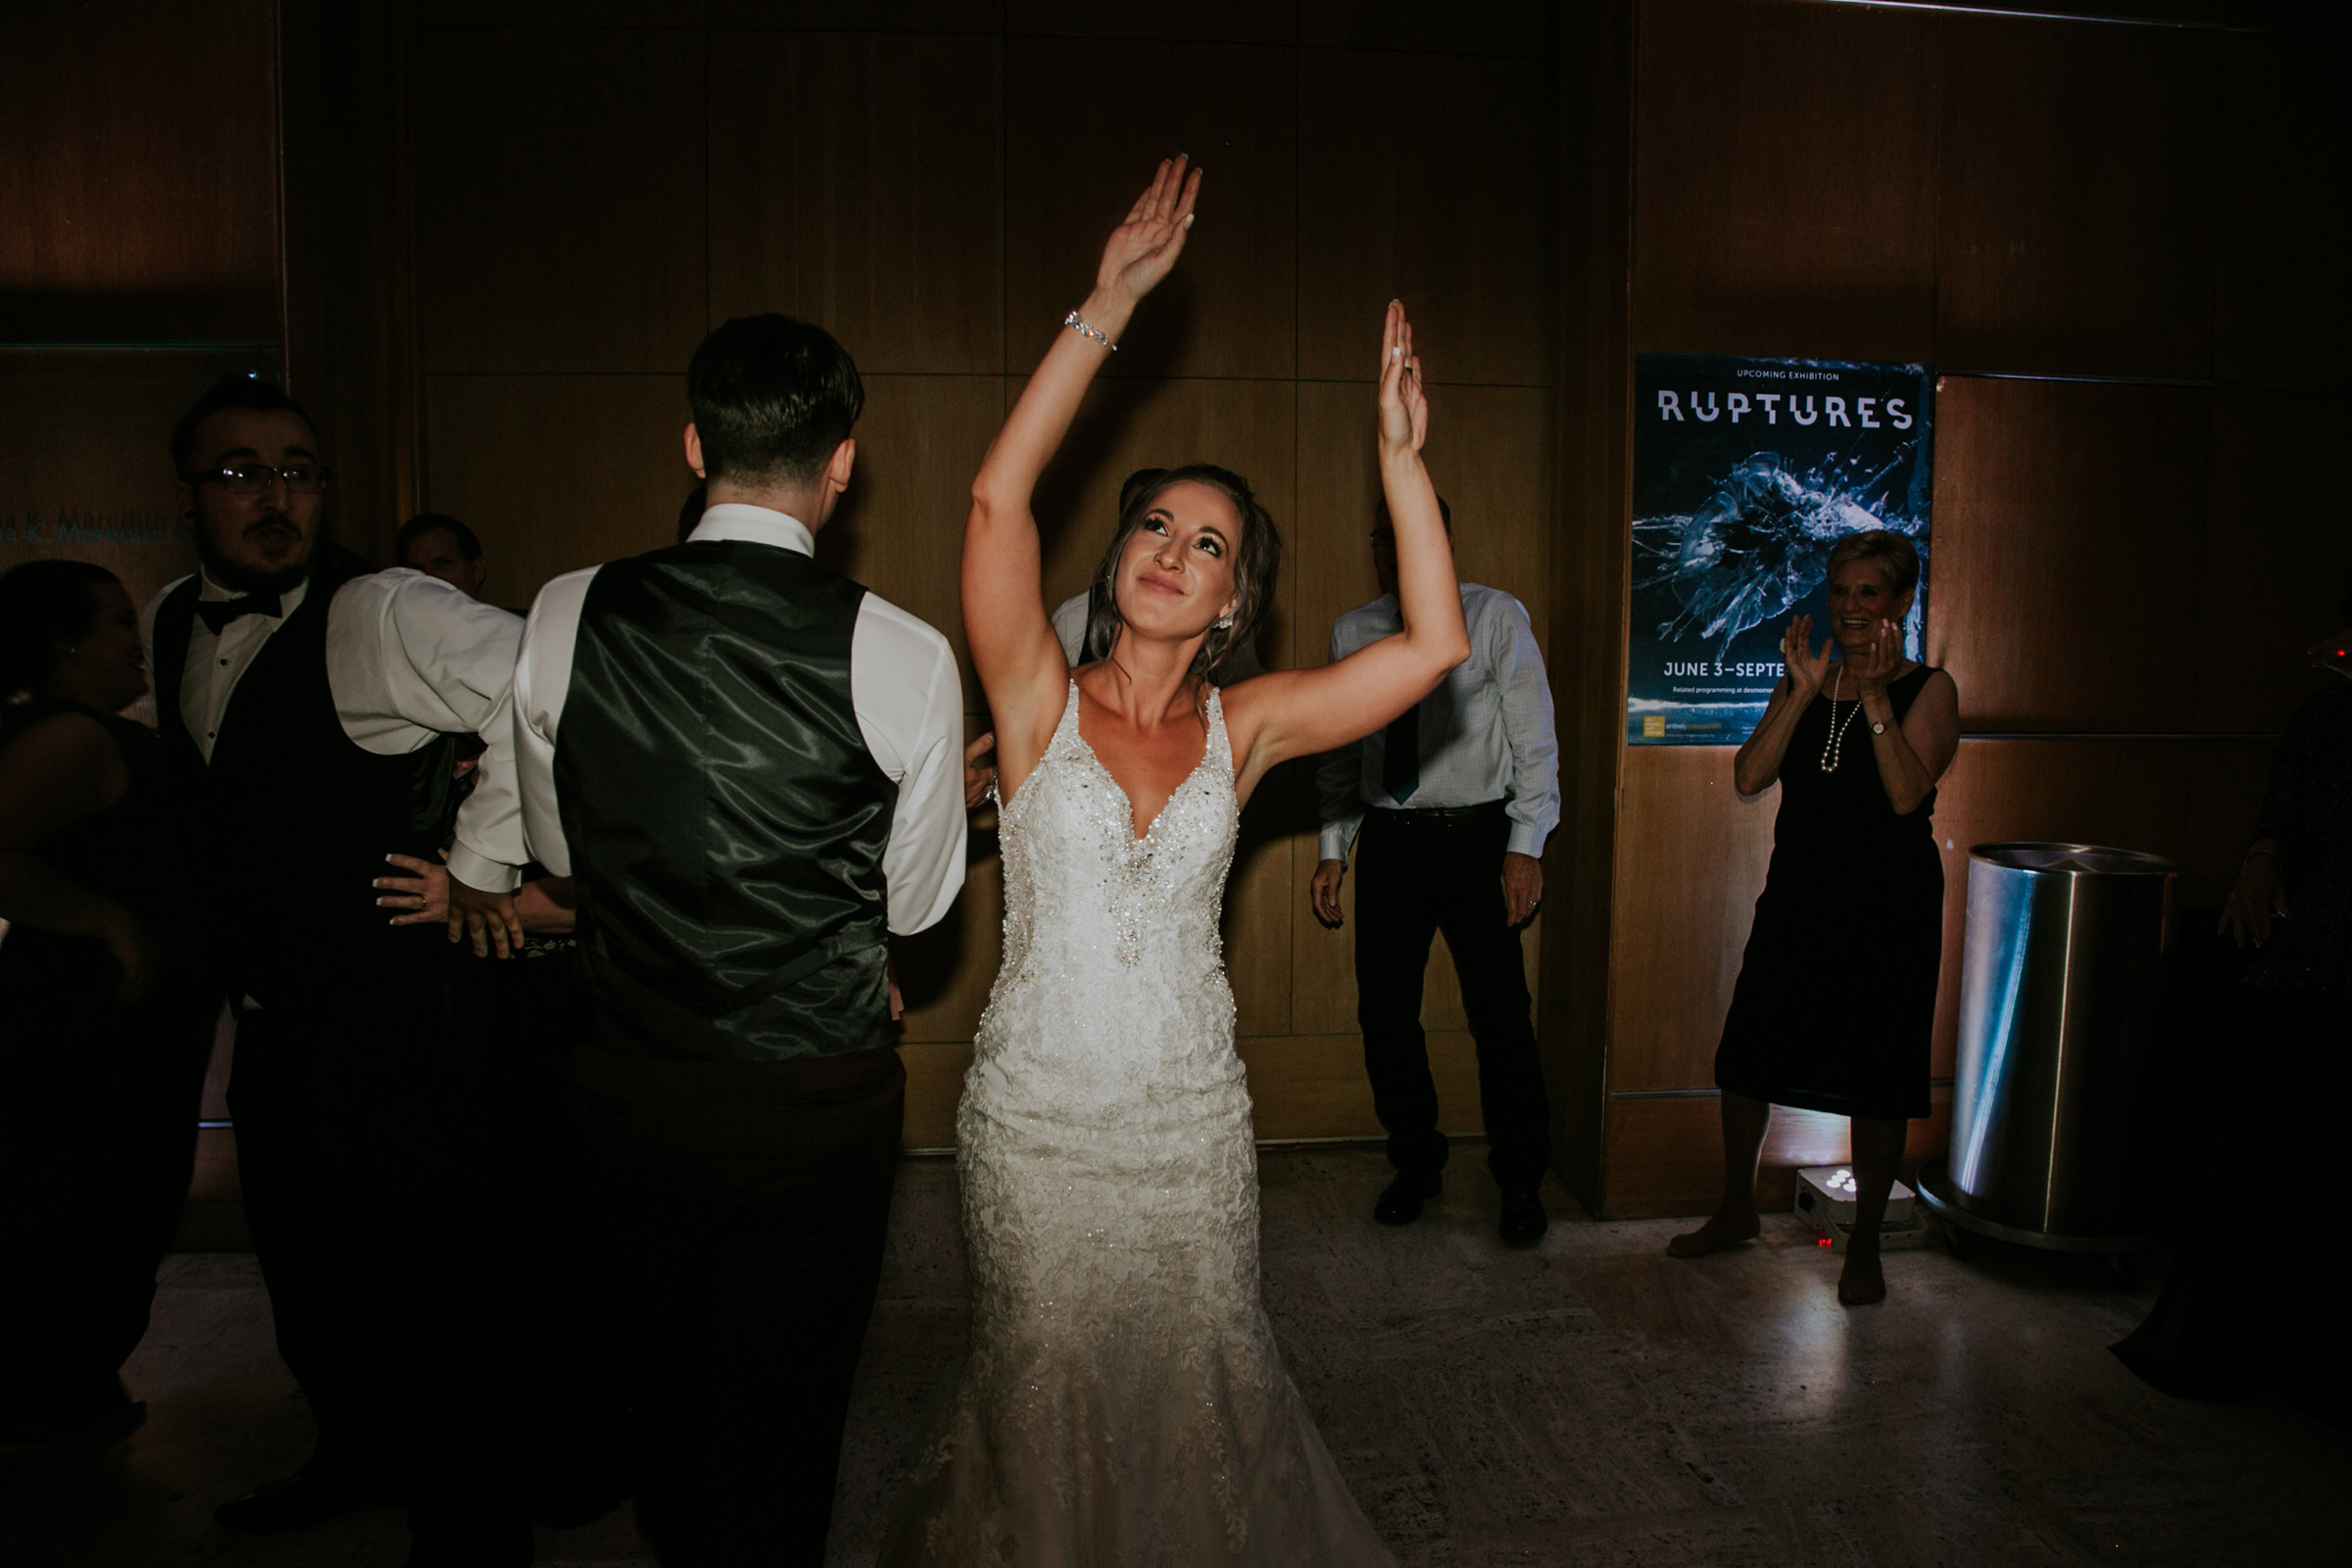 bride-with-arms-in-the-air-dancing-on-floor-desmoines-iowa-art-center-raelyn-ramey-photography.jpg